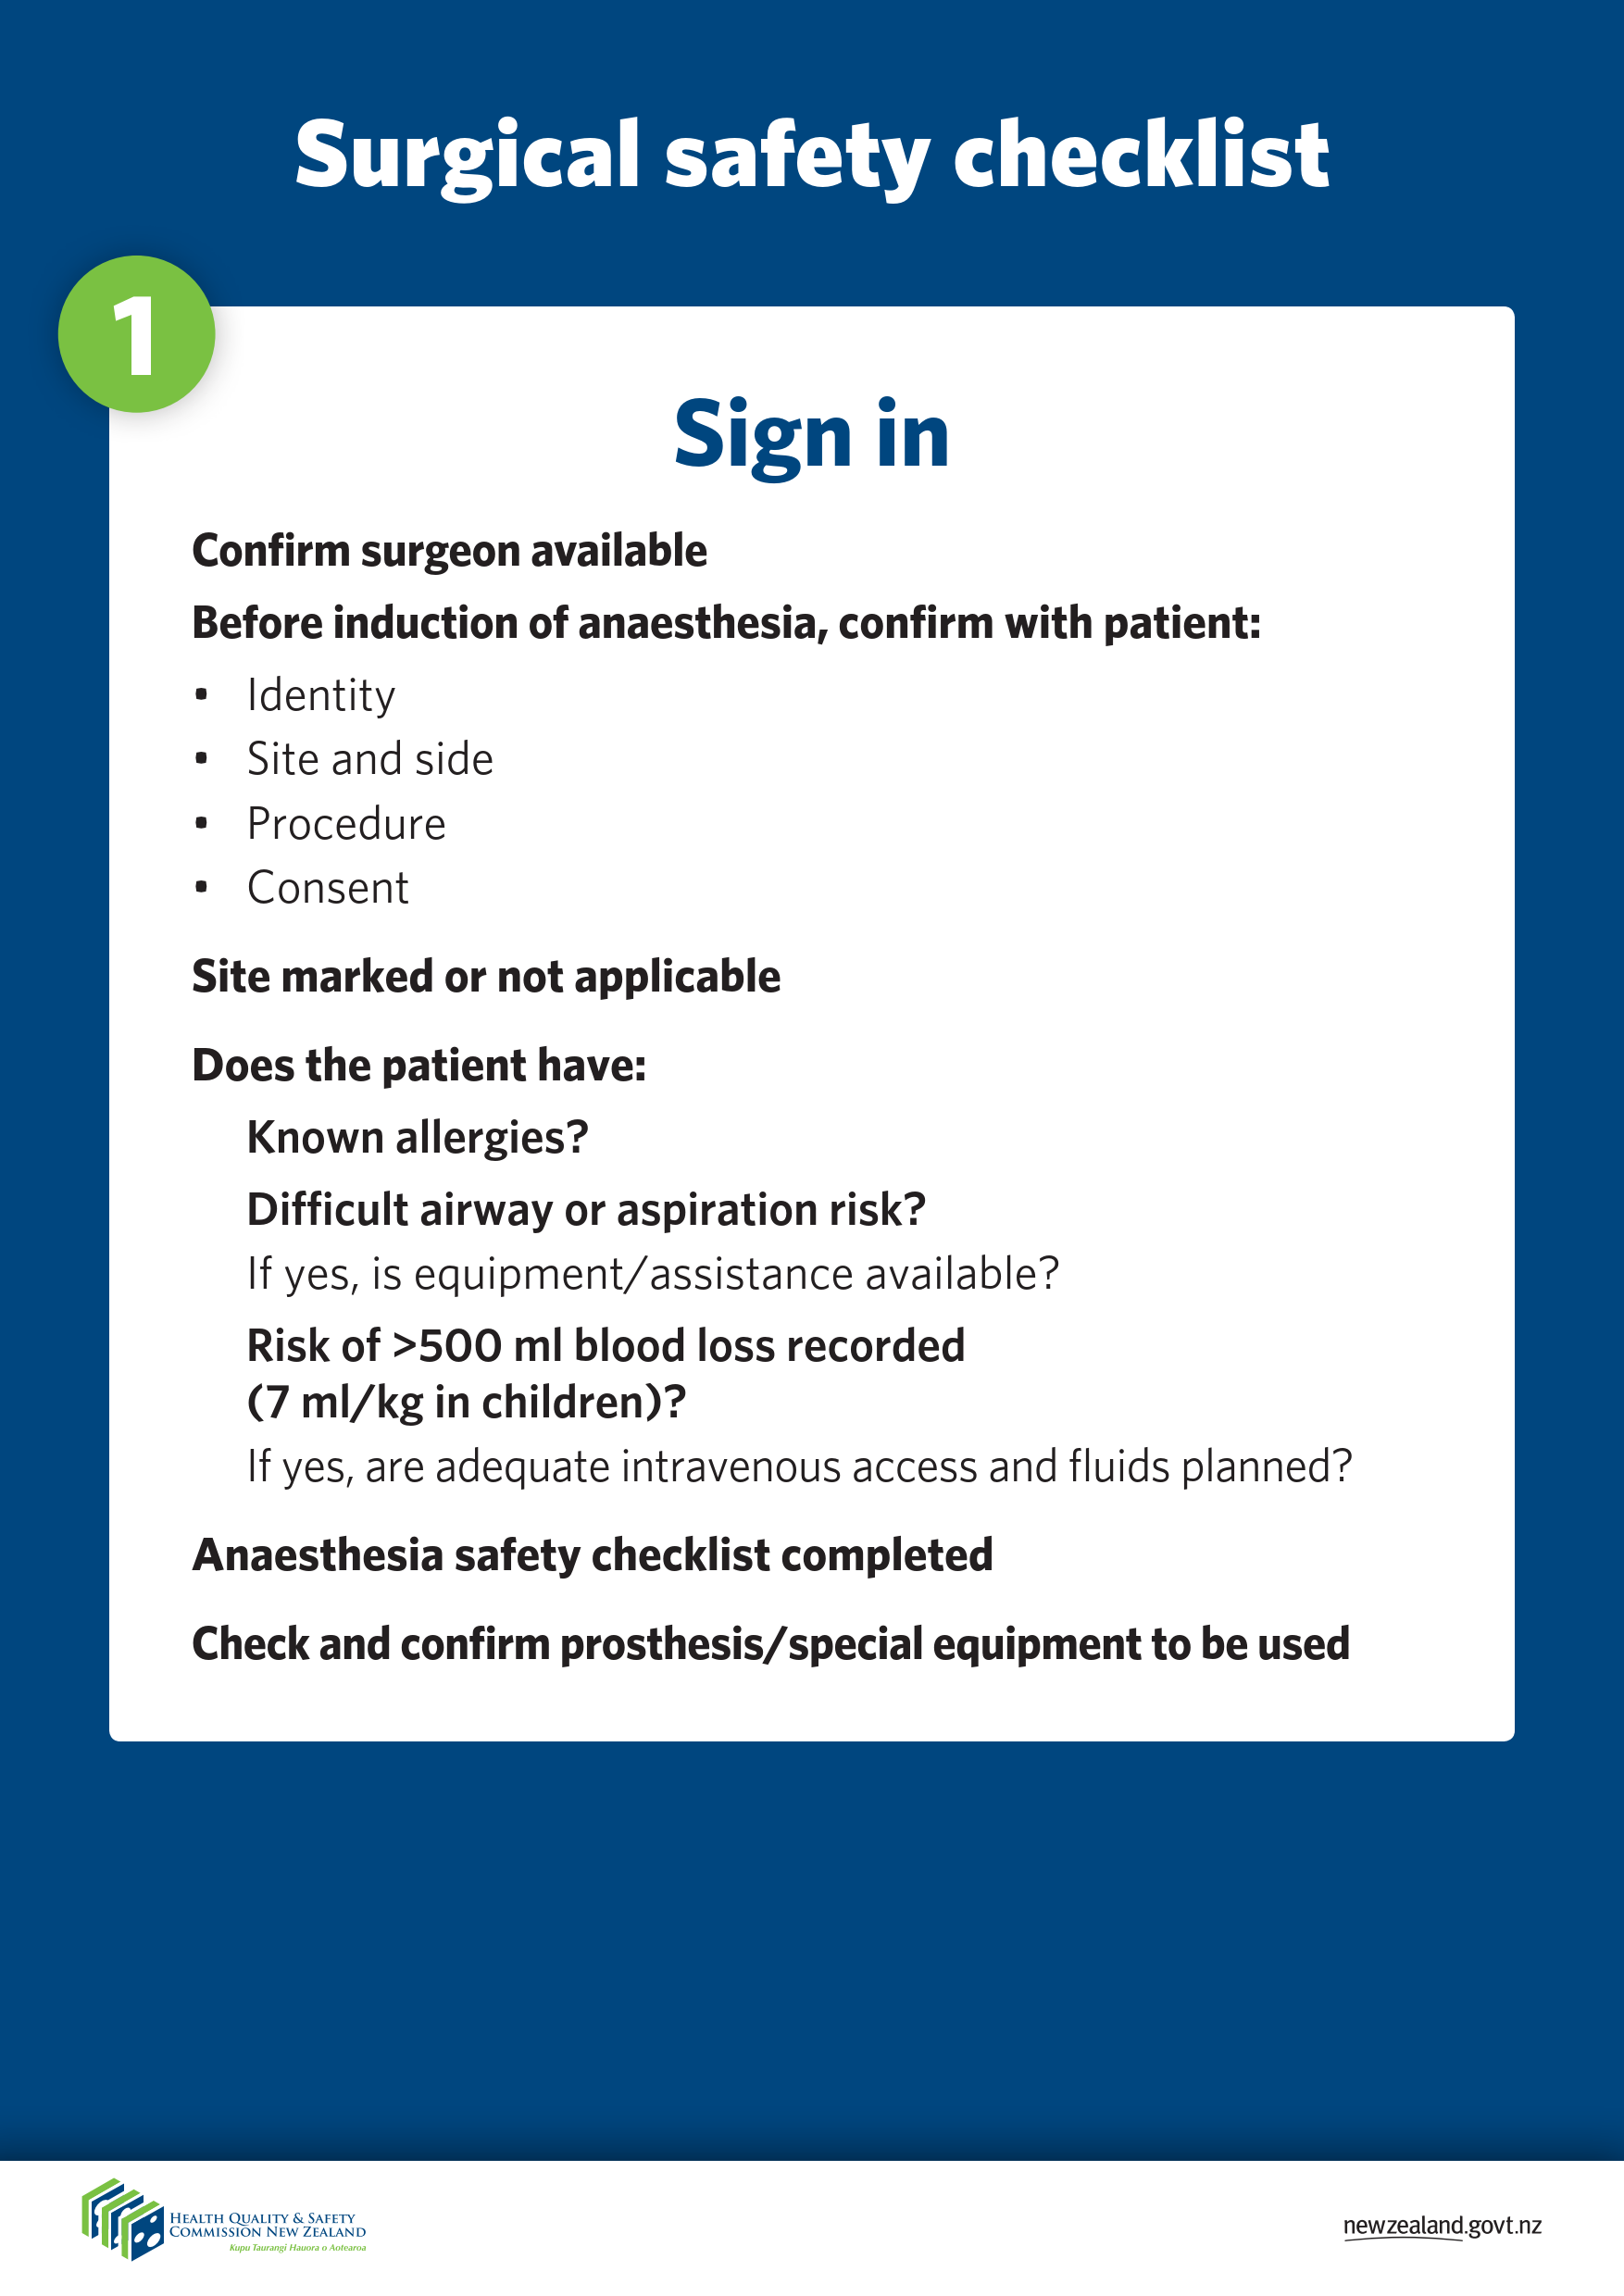 surgical safety checklist posters Jun 2015 2